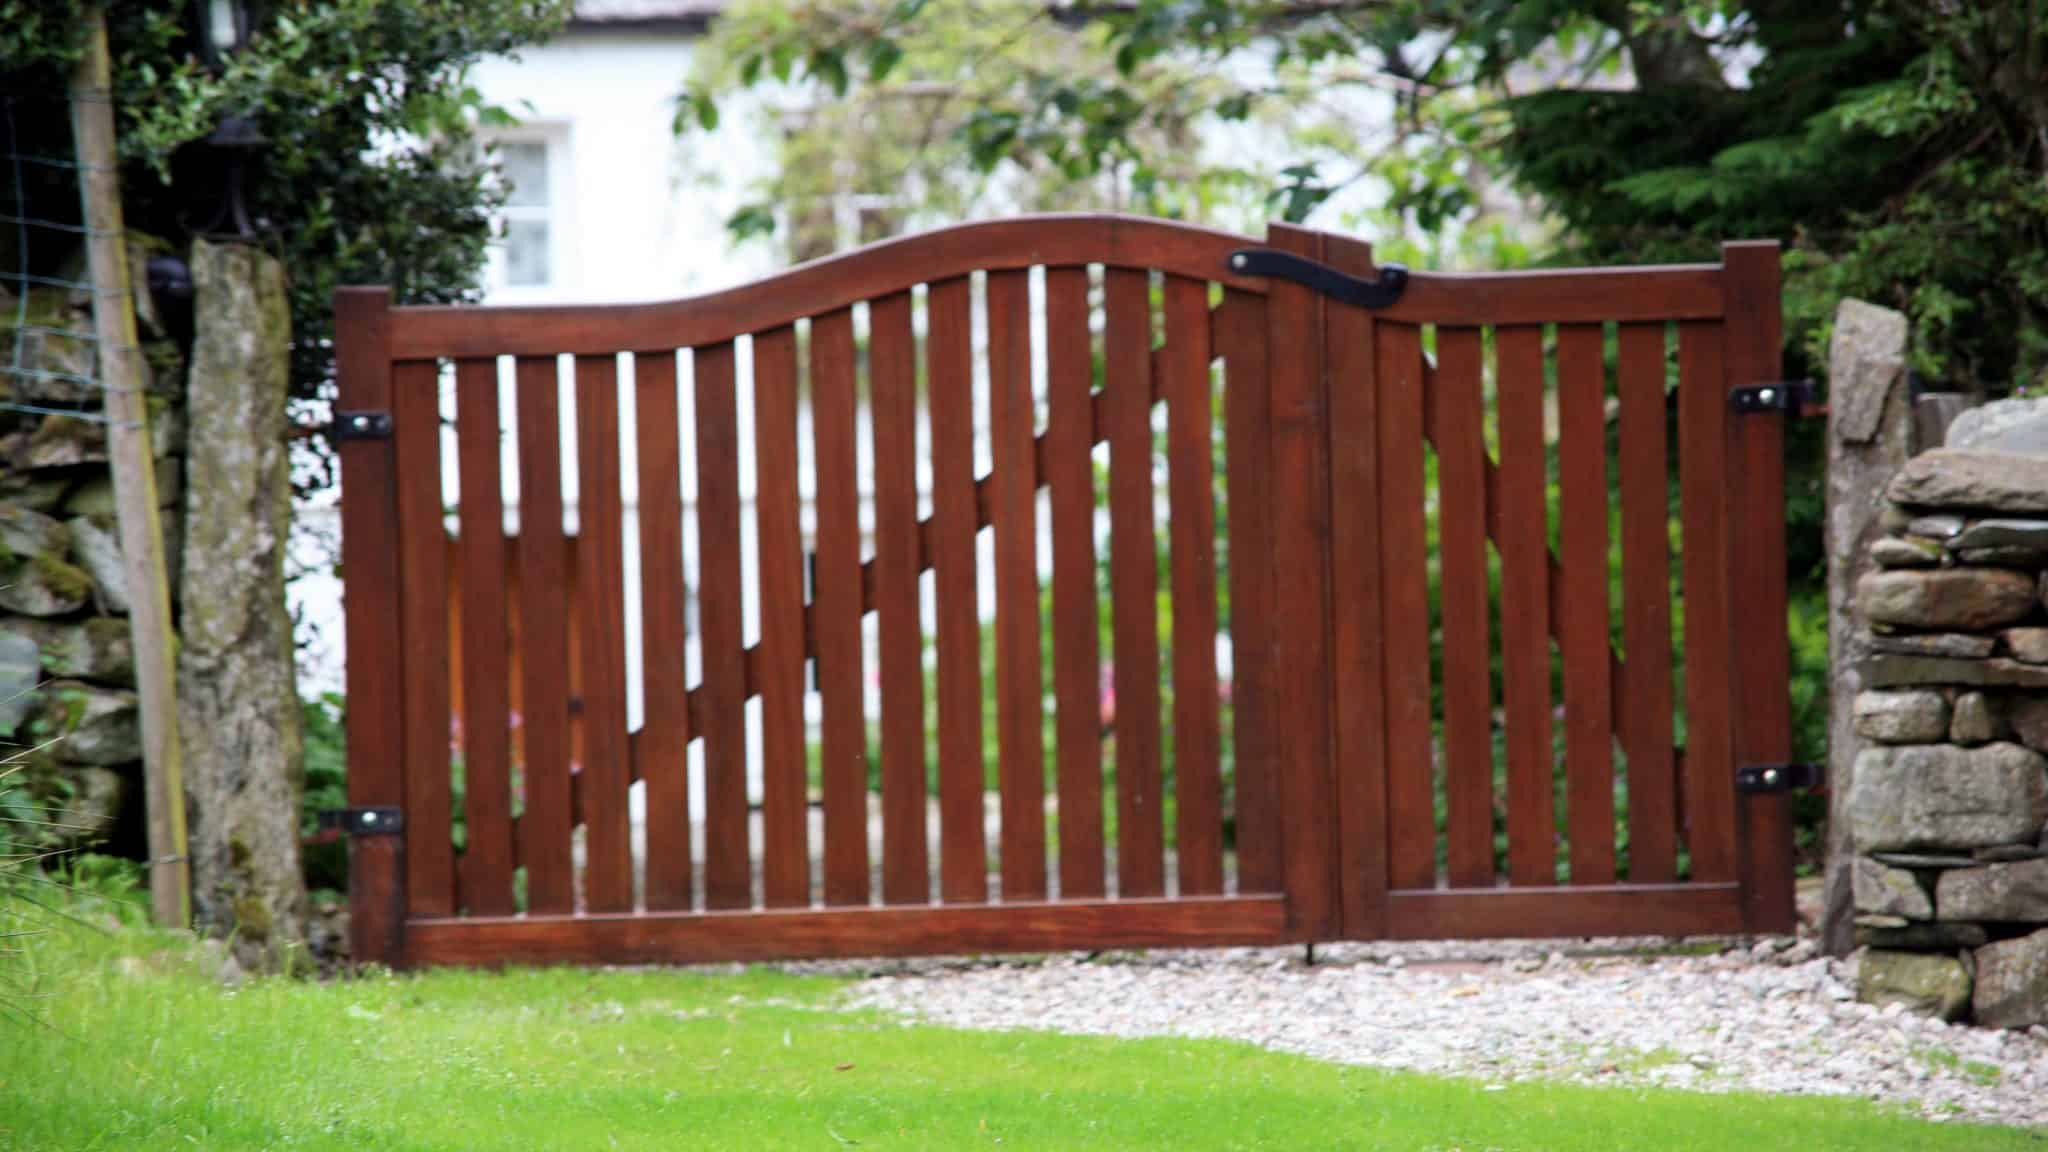 wooden sliding driveway gate on gravel path with lawn